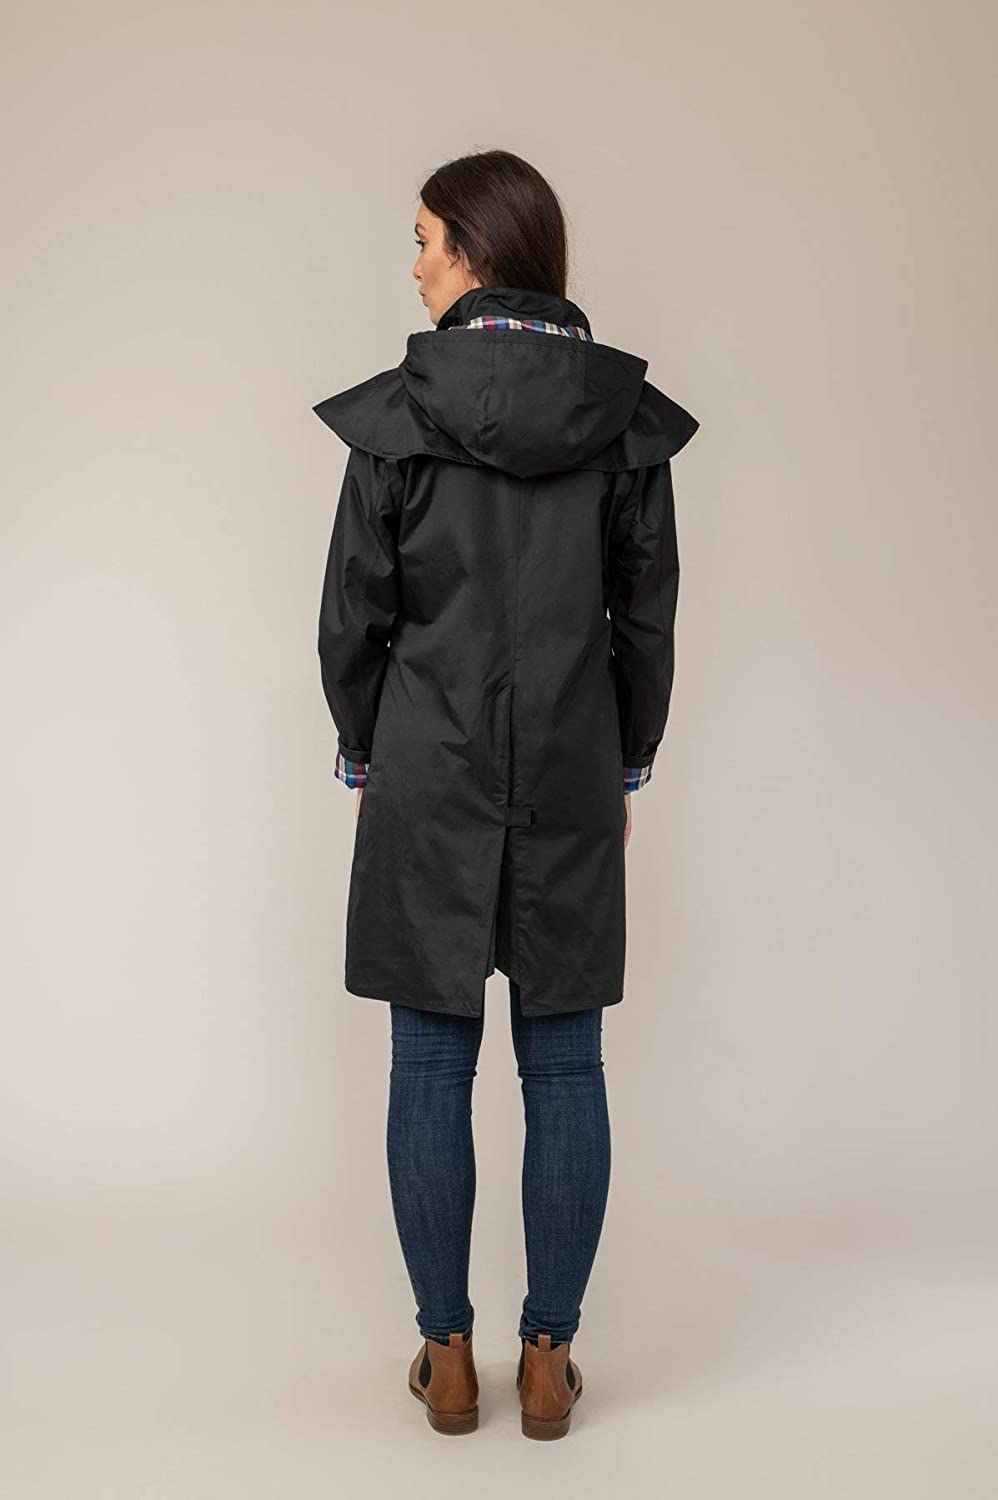 Lighthouse Outrider Femme 3//4 Longueur Raincoat imperm/éable